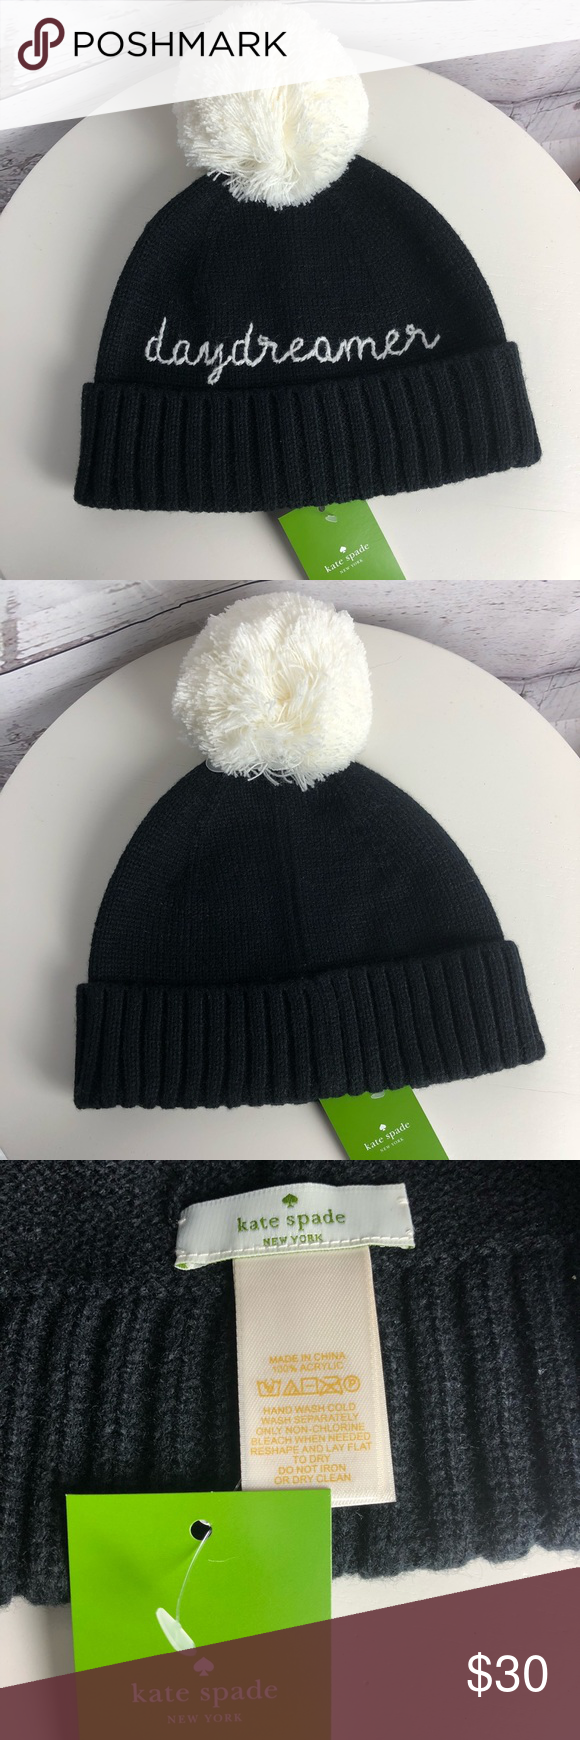 c1993545095e0 🎄SALE🎄Kate Spade Daydreamer Beanie Super cute beanie from Kate Spade!  Just in time for the holidays! 100% Acrylic Stitched  Daydreamer   lettering